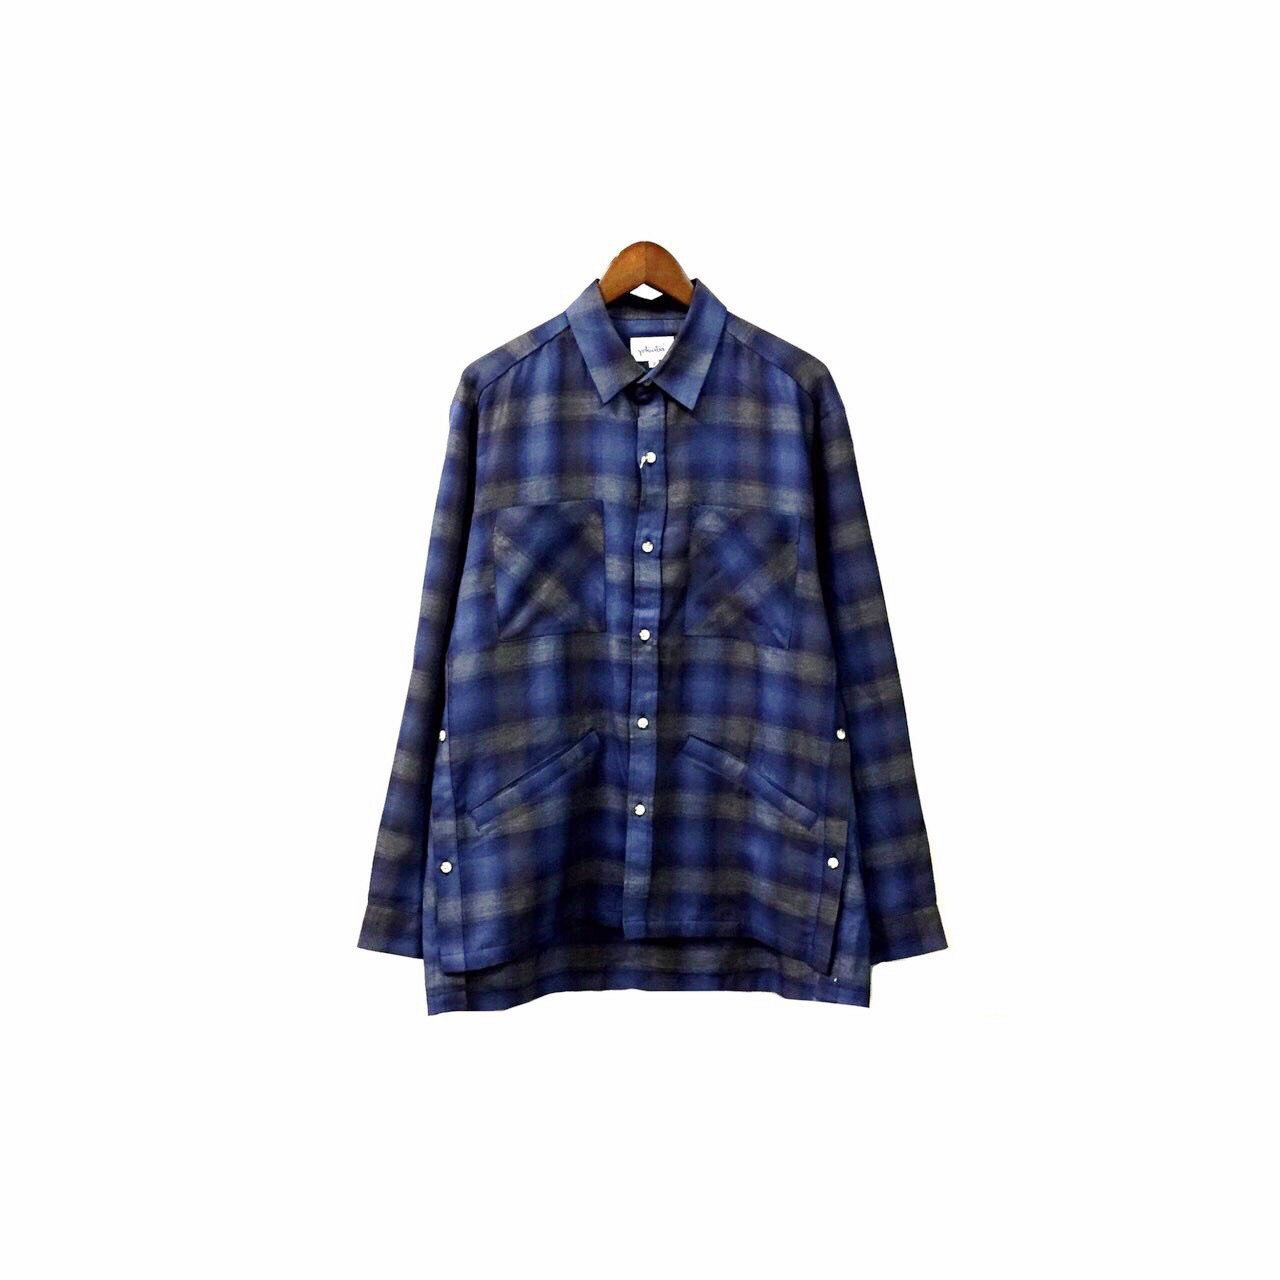 yotsuba - Cotton & Rayon Check Shirt / Blue ¥22000+tax